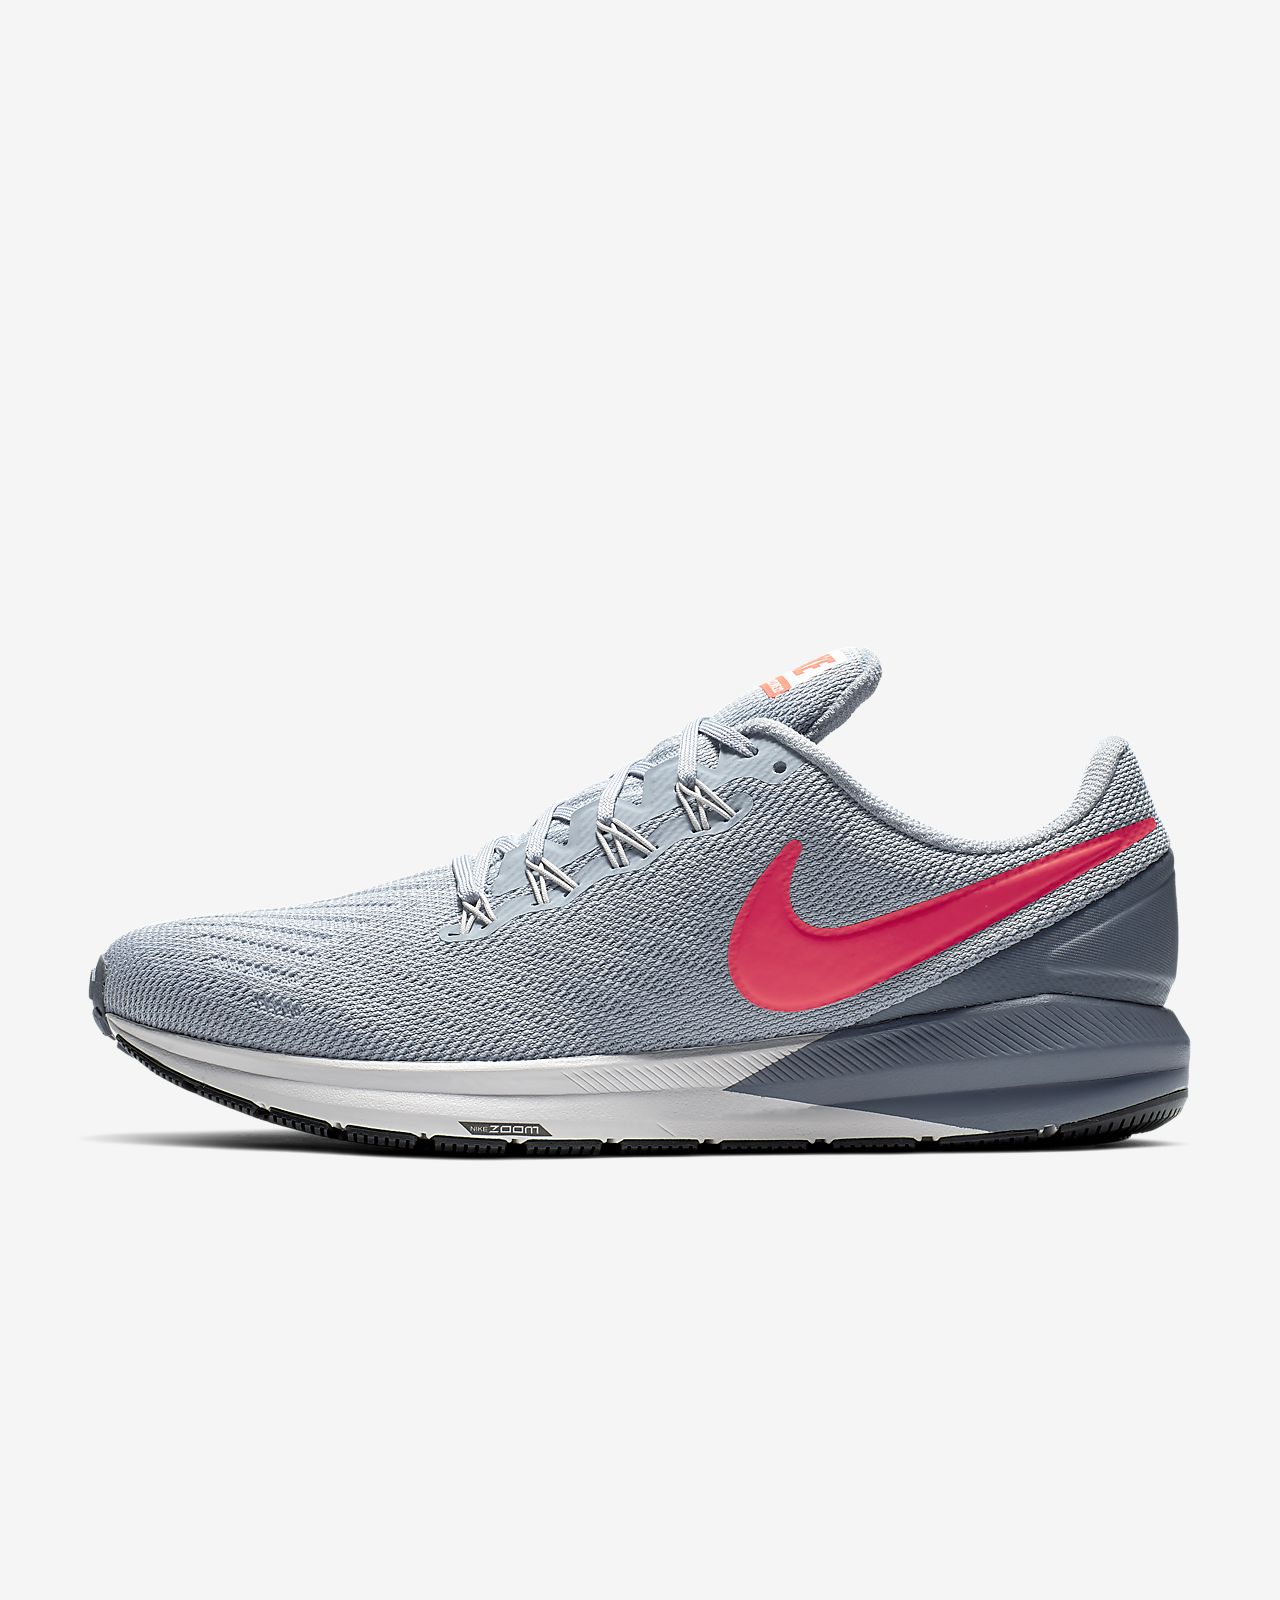 Chaussure de running Nike Air Zoom Structure 22 pour Homme